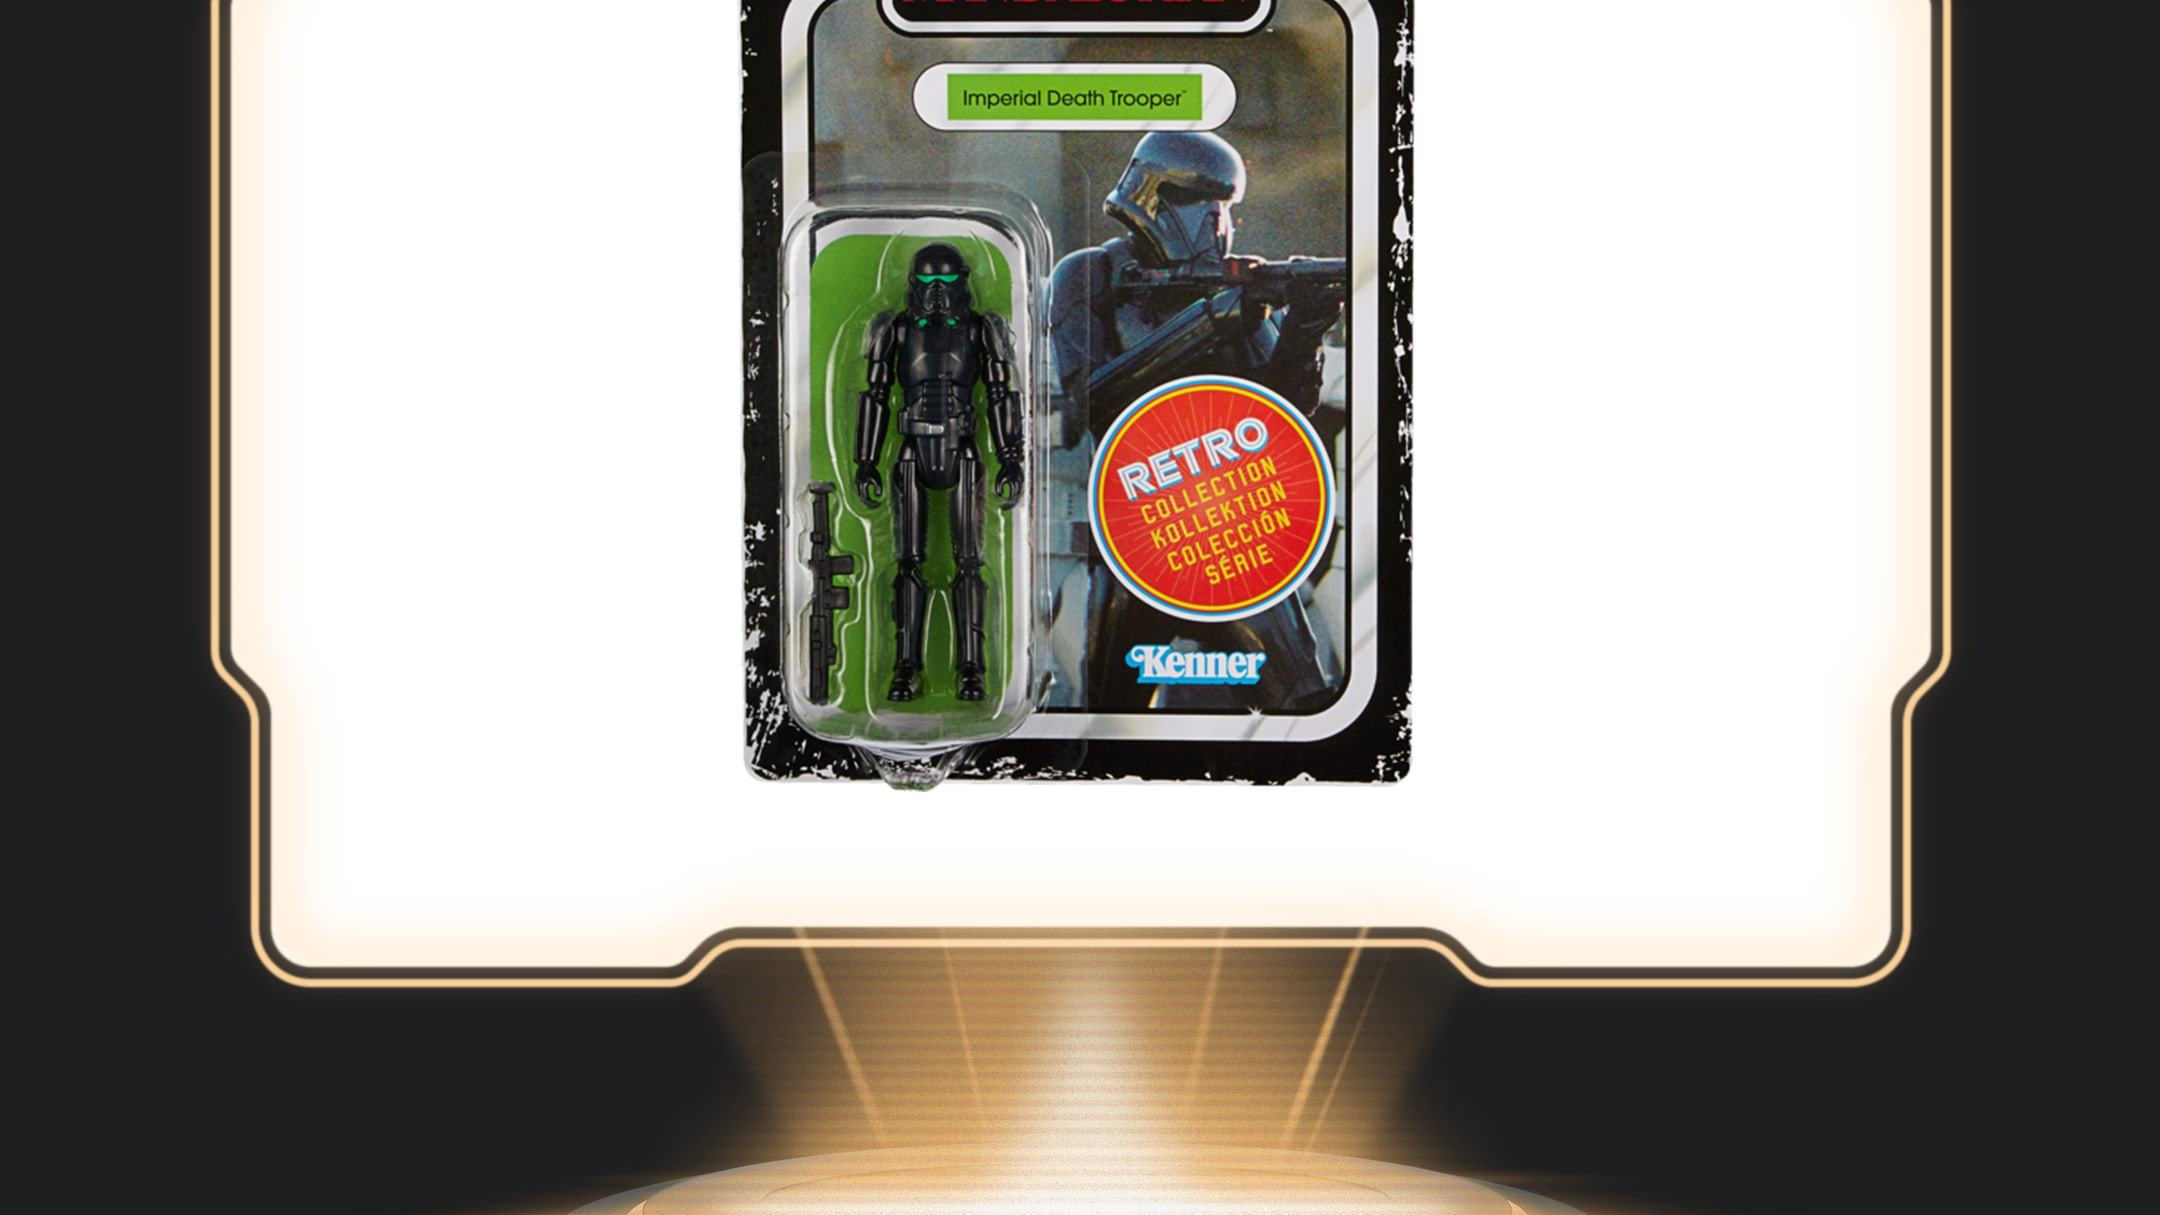 Hasbro - Star Wars: The Retro Collection 3.75-inch Imperial Death Trooper Figure